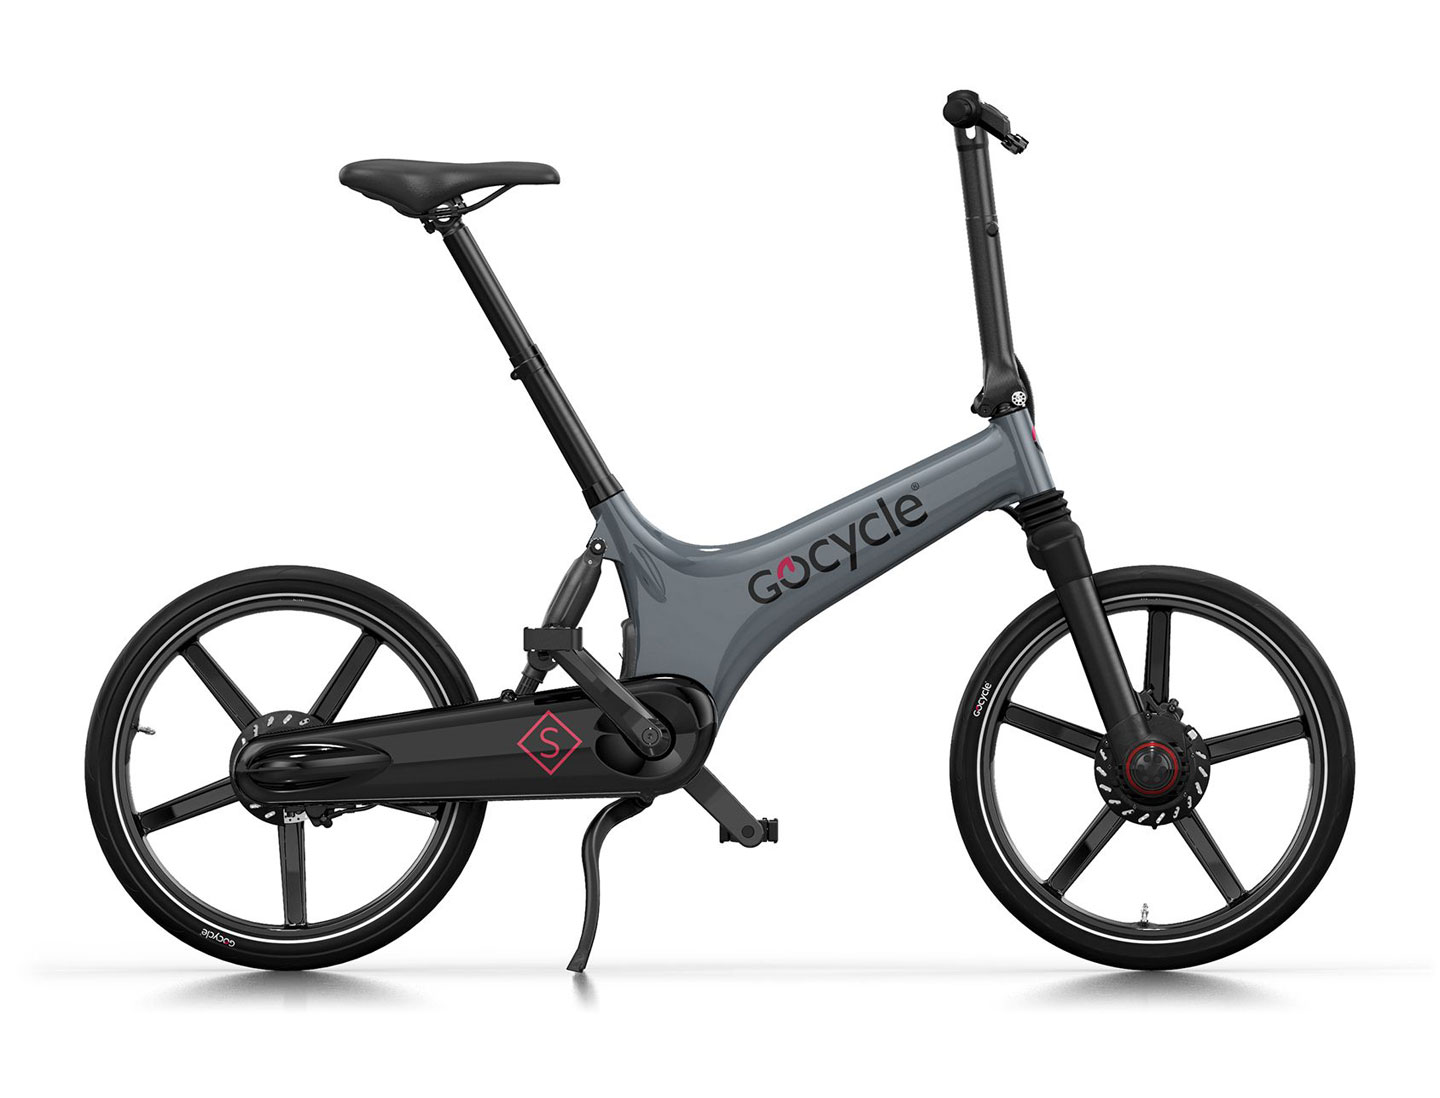 Gocycle GS Grey